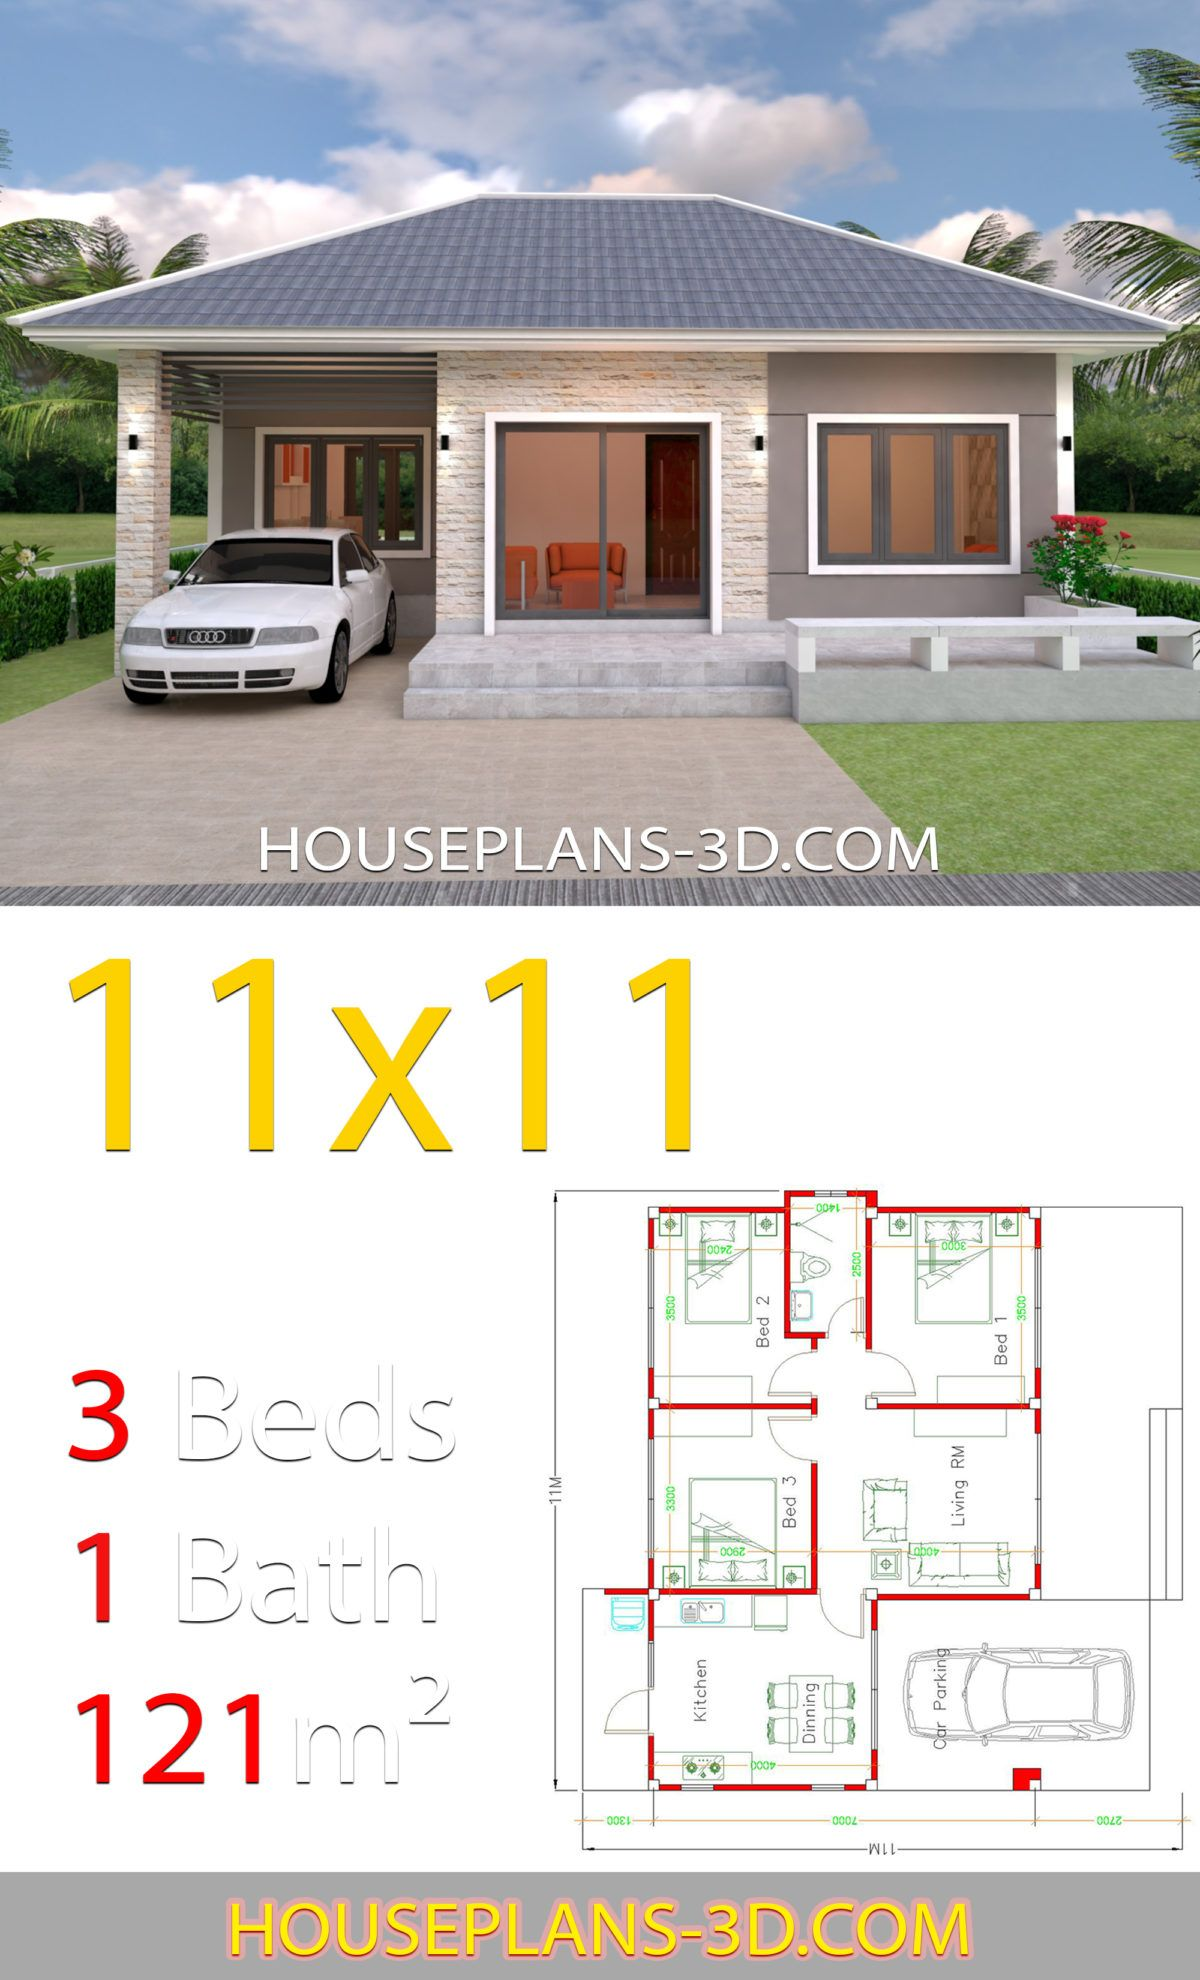 House Design 11x11 With 3 Bedrooms Hip Roof House Plans 3d Simple House Design House Plans Affordable House Plans